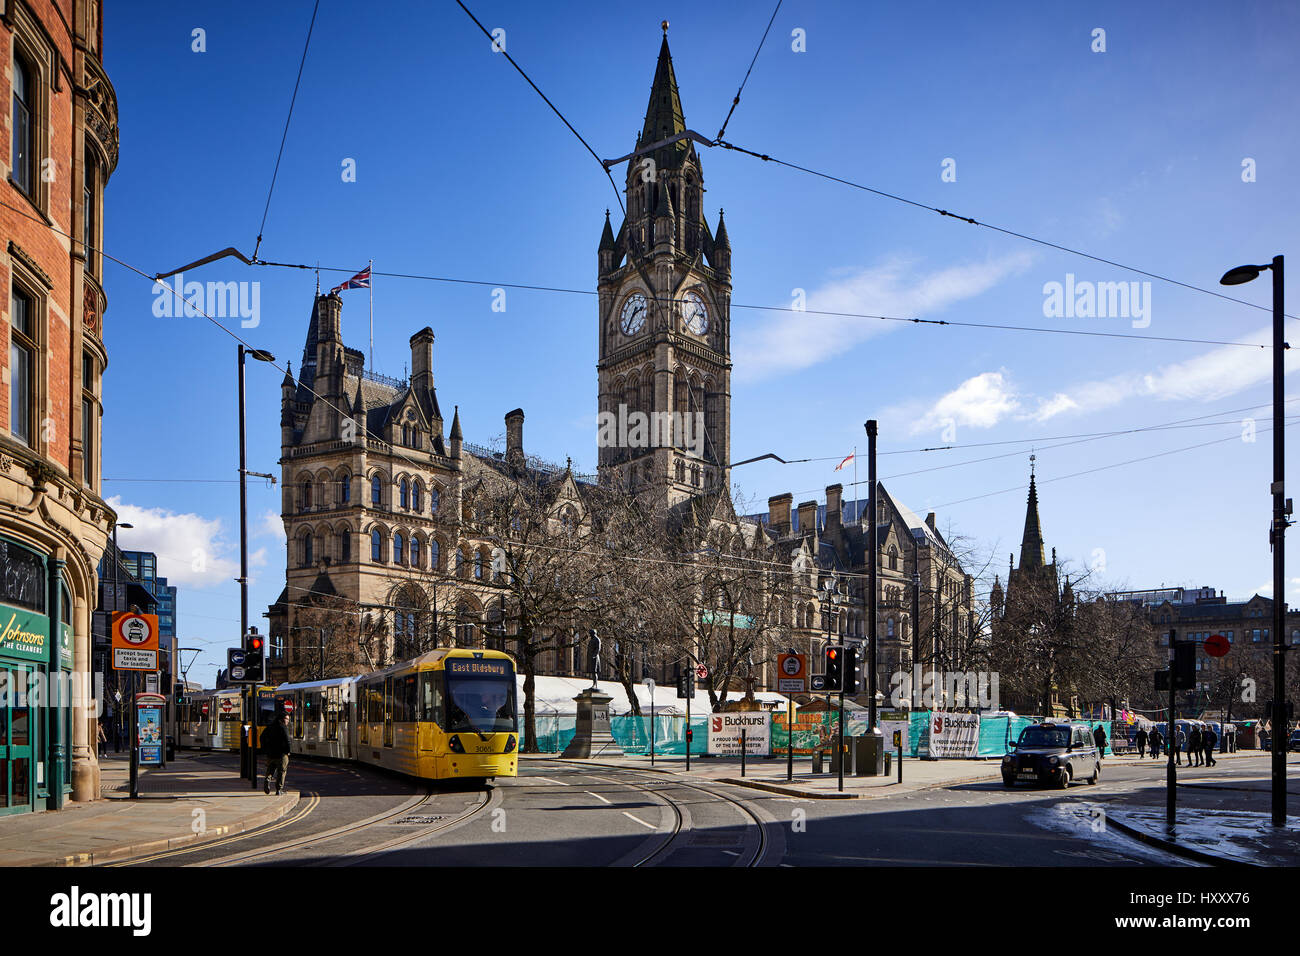 Metrolink second crossing passes Manchester City Council Town Hall in Albert Square  Manchester, England, UK.   - Stock Image